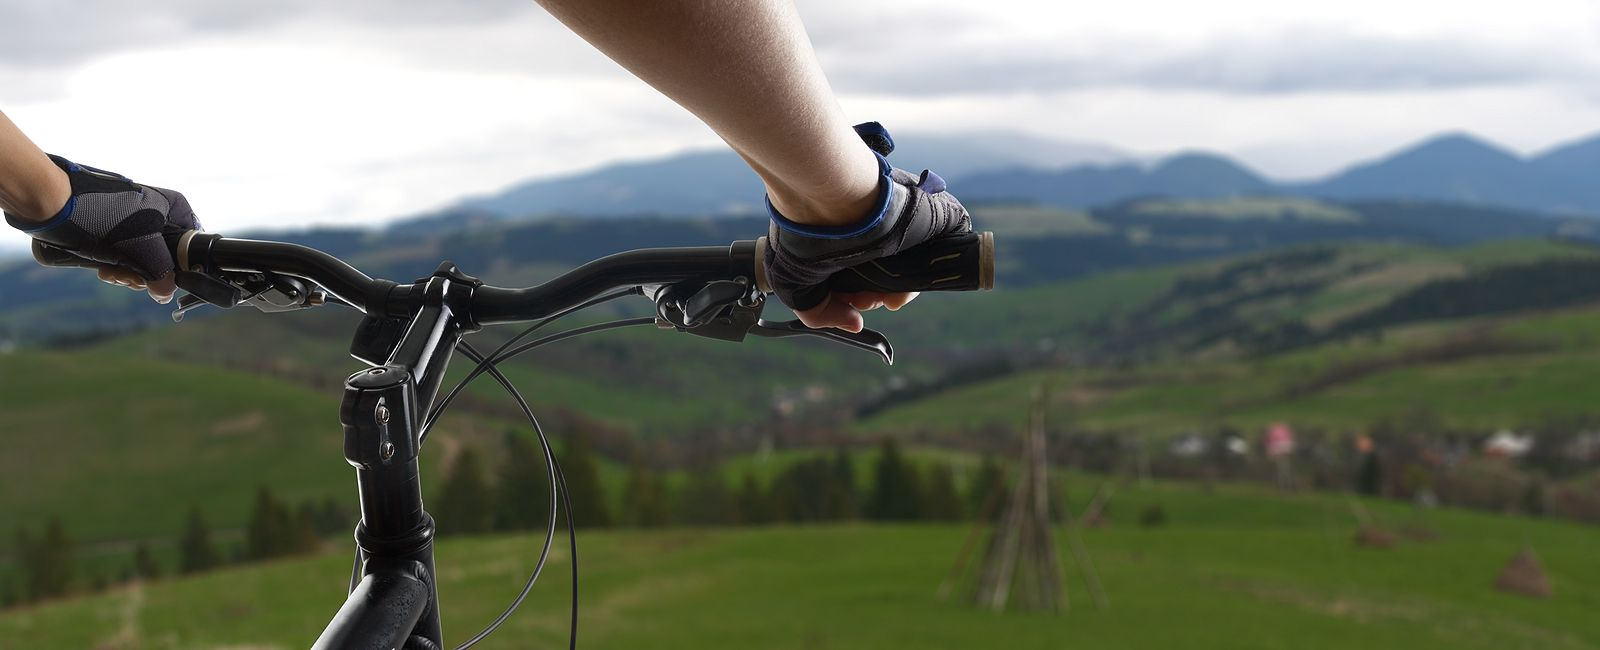 handbiking-header-1600x650